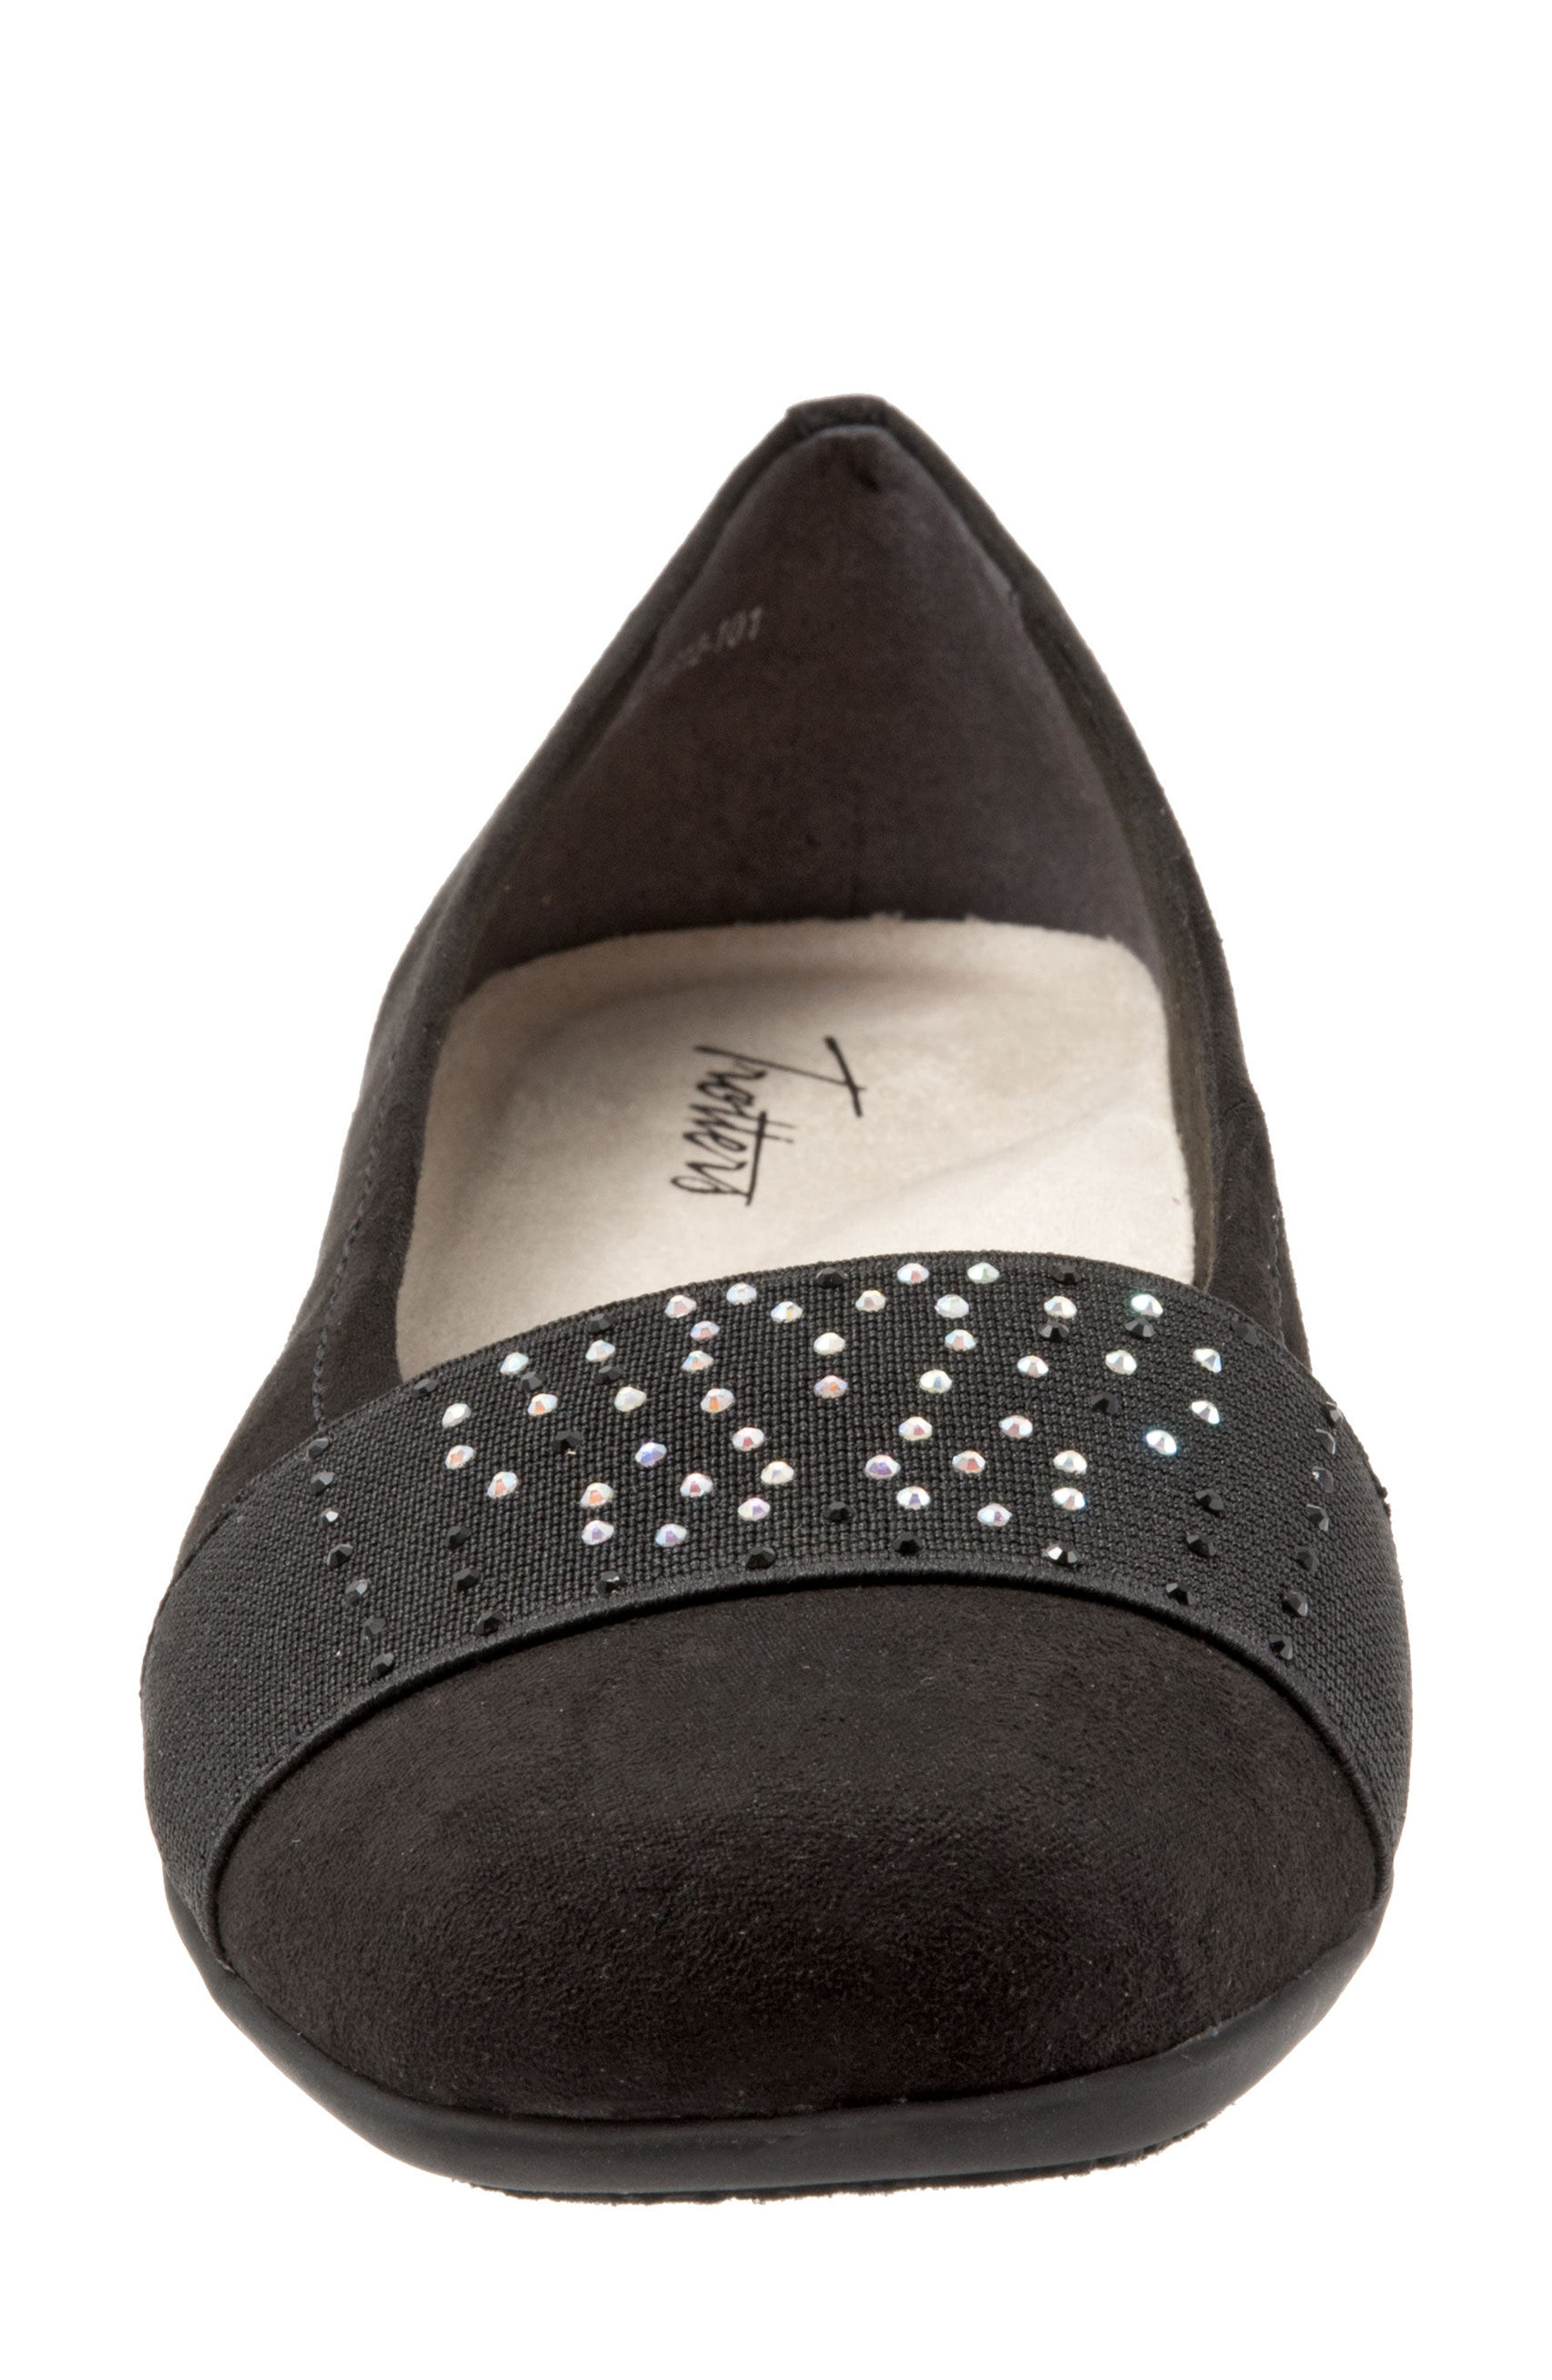 TROTTERS,                             Samantha Flat,                             Alternate thumbnail 4, color,                             BLACK SUEDE